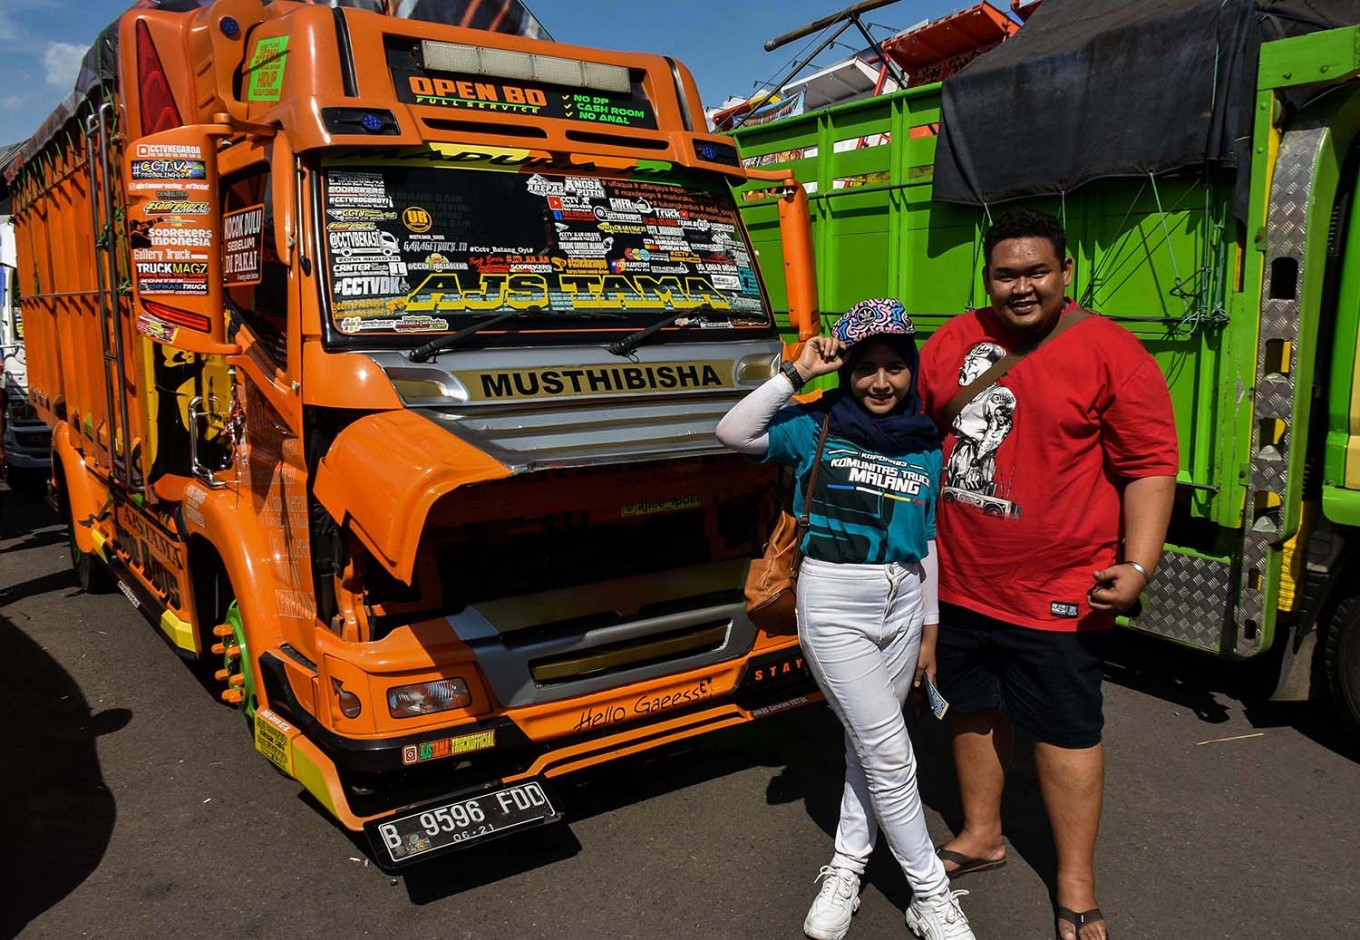 Making friends: Erlianda Alfajri (left) from the CCTV truck lovers' community in Blitar, East Java, poses with truck owner Ajie Ipoel from Bekasi, West Java. JP/Aman Rochman